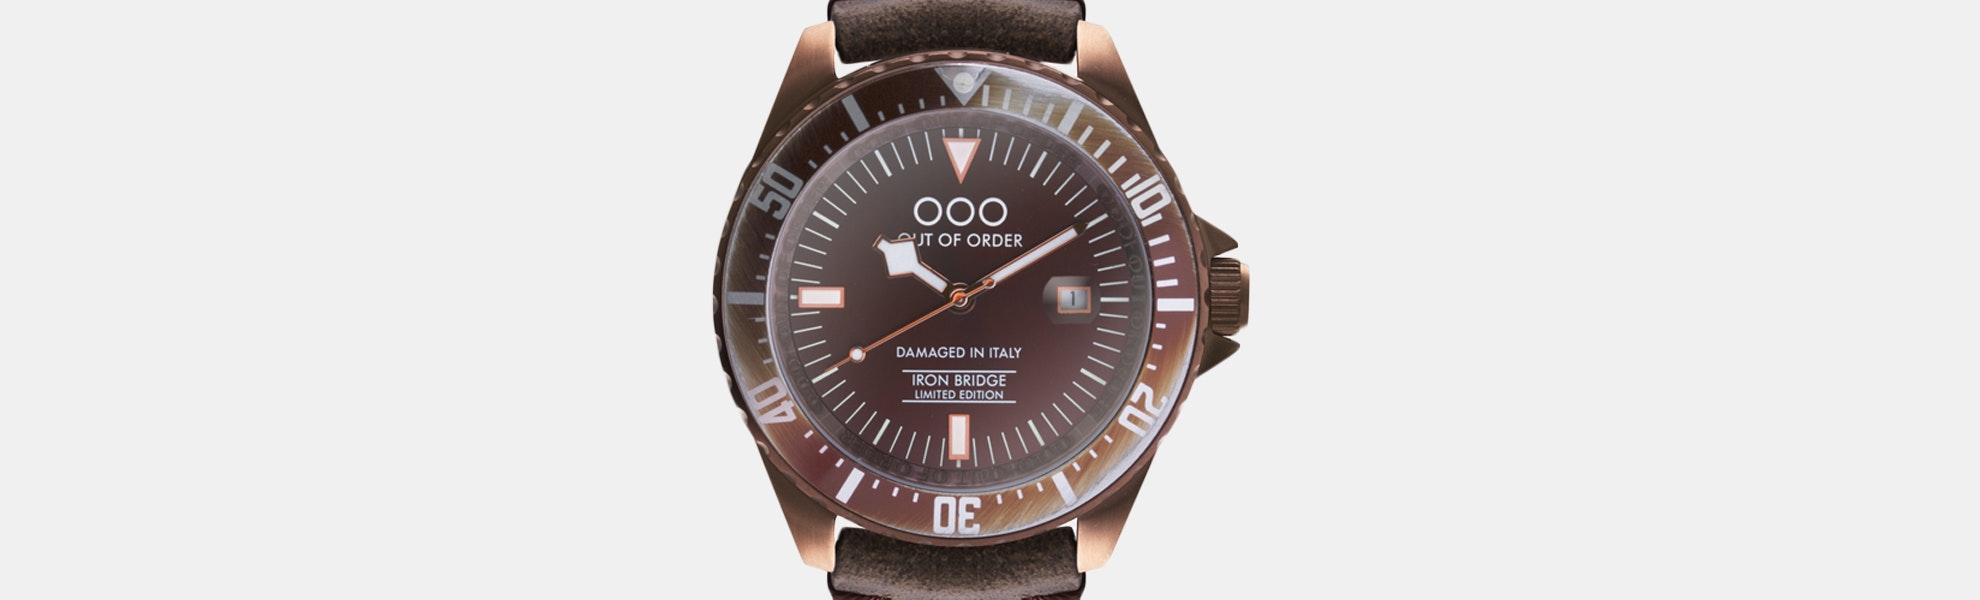 Out of Order Iron Bridge Automatic Watch